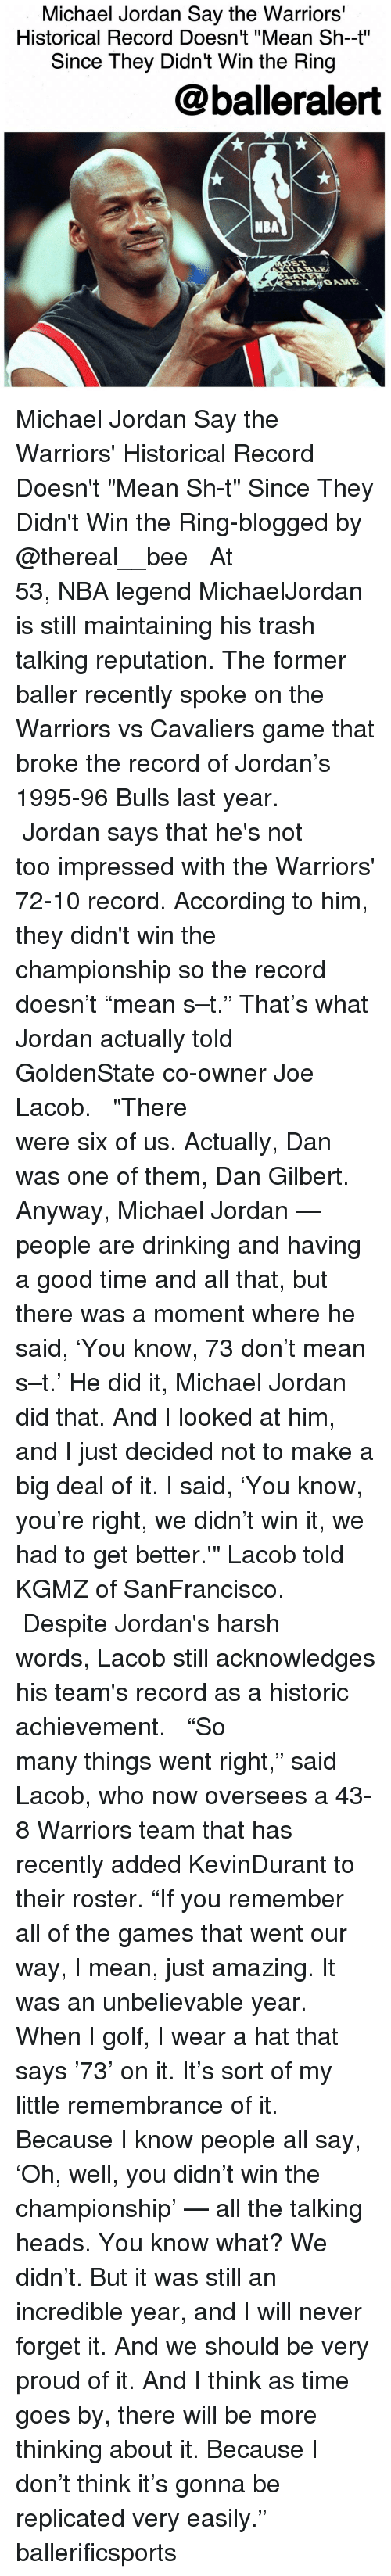 """Memes, Michael Jordan, and 🤖: Michael Jordan Say the Warriors'  Historical Record Doesn't """"Mean Sh-t""""  Since They Didn't Win the Ring  balleralert  NBA Michael Jordan Say the Warriors' Historical Record Doesn't """"Mean Sh-t"""" Since They Didn't Win the Ring-blogged by @thereal__bee ⠀⠀⠀⠀⠀⠀⠀⠀⠀ ⠀⠀⠀⠀⠀⠀⠀⠀⠀ At 53, NBA legend MichaelJordan is still maintaining his trash talking reputation. The former baller recently spoke on the Warriors vs Cavaliers game that broke the record of Jordan's 1995-96 Bulls last year. ⠀⠀⠀⠀⠀⠀⠀⠀⠀ ⠀⠀⠀⠀⠀⠀⠀⠀⠀ Jordan says that he's not too impressed with the Warriors' 72-10 record. According to him, they didn't win the championship so the record doesn't """"mean s–t."""" That's what Jordan actually told GoldenState co-owner Joe Lacob. ⠀⠀⠀⠀⠀⠀⠀⠀⠀ ⠀⠀⠀⠀⠀⠀⠀⠀⠀ """"There were six of us. Actually, Dan was one of them, Dan Gilbert. Anyway, Michael Jordan — people are drinking and having a good time and all that, but there was a moment where he said, 'You know, 73 don't mean s–t.' He did it, Michael Jordan did that. And I looked at him, and I just decided not to make a big deal of it. I said, 'You know, you're right, we didn't win it, we had to get better.'"""" Lacob told KGMZ of SanFrancisco. ⠀⠀⠀⠀⠀⠀⠀⠀⠀ ⠀⠀⠀⠀⠀⠀⠀⠀⠀ Despite Jordan's harsh words, Lacob still acknowledges his team's record as a historic achievement. ⠀⠀⠀⠀⠀⠀⠀⠀⠀ ⠀⠀⠀⠀⠀⠀⠀⠀⠀ """"So many things went right,"""" said Lacob, who now oversees a 43-8 Warriors team that has recently added KevinDurant to their roster. """"If you remember all of the games that went our way, I mean, just amazing. It was an unbelievable year. When I golf, I wear a hat that says '73' on it. It's sort of my little remembrance of it. Because I know people all say, 'Oh, well, you didn't win the championship' — all the talking heads. You know what? We didn't. But it was still an incredible year, and I will never forget it. And we should be very proud of it. And I think as time goes by, there will be more thinking about it. Because I don't think it's gonna be re"""